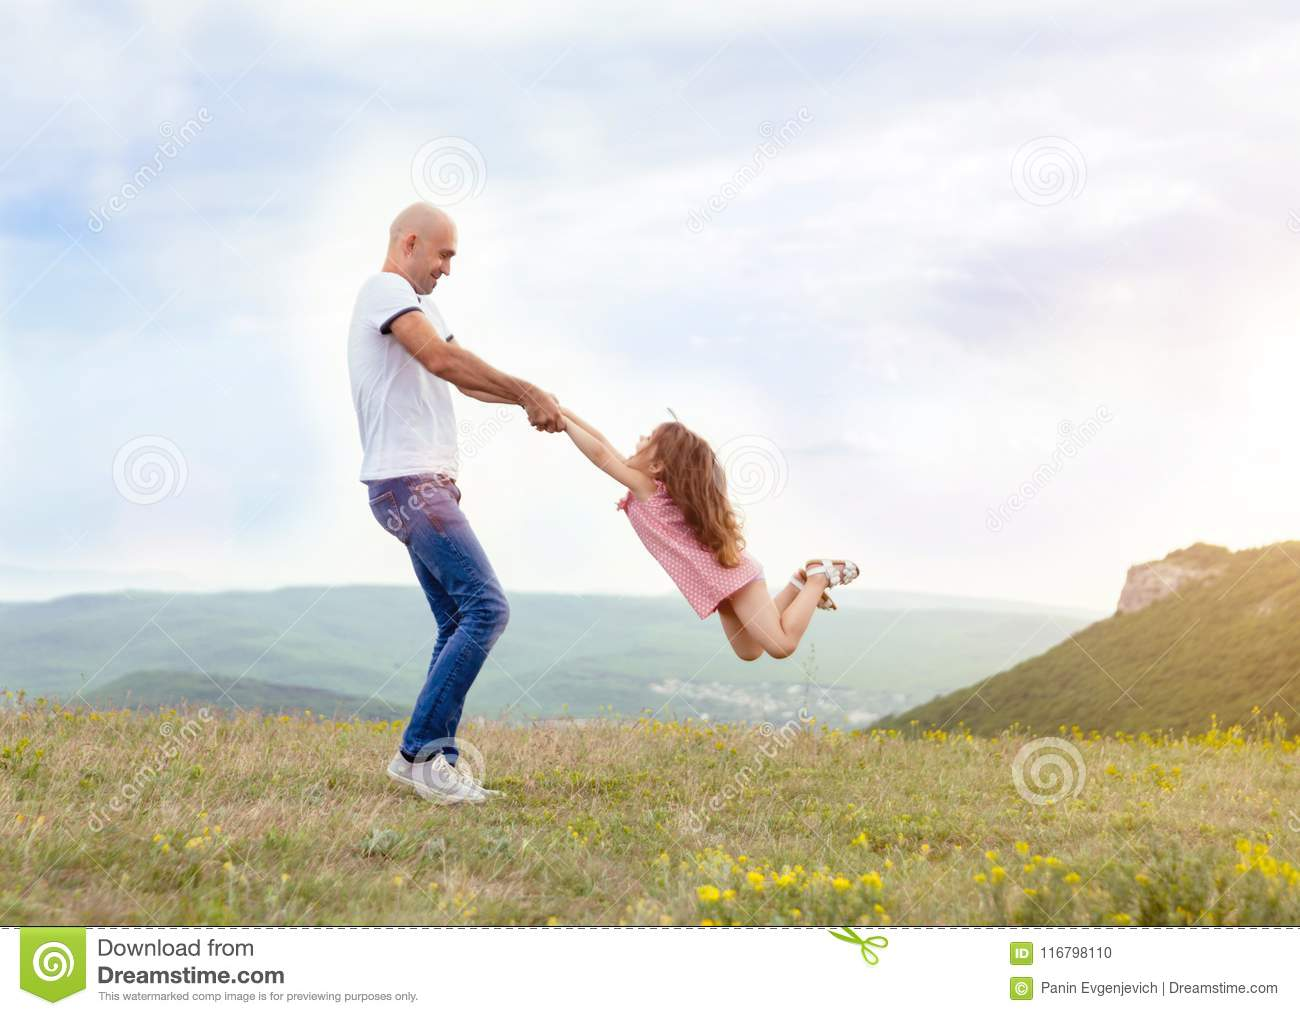 Father playing with his daughter in sunny field